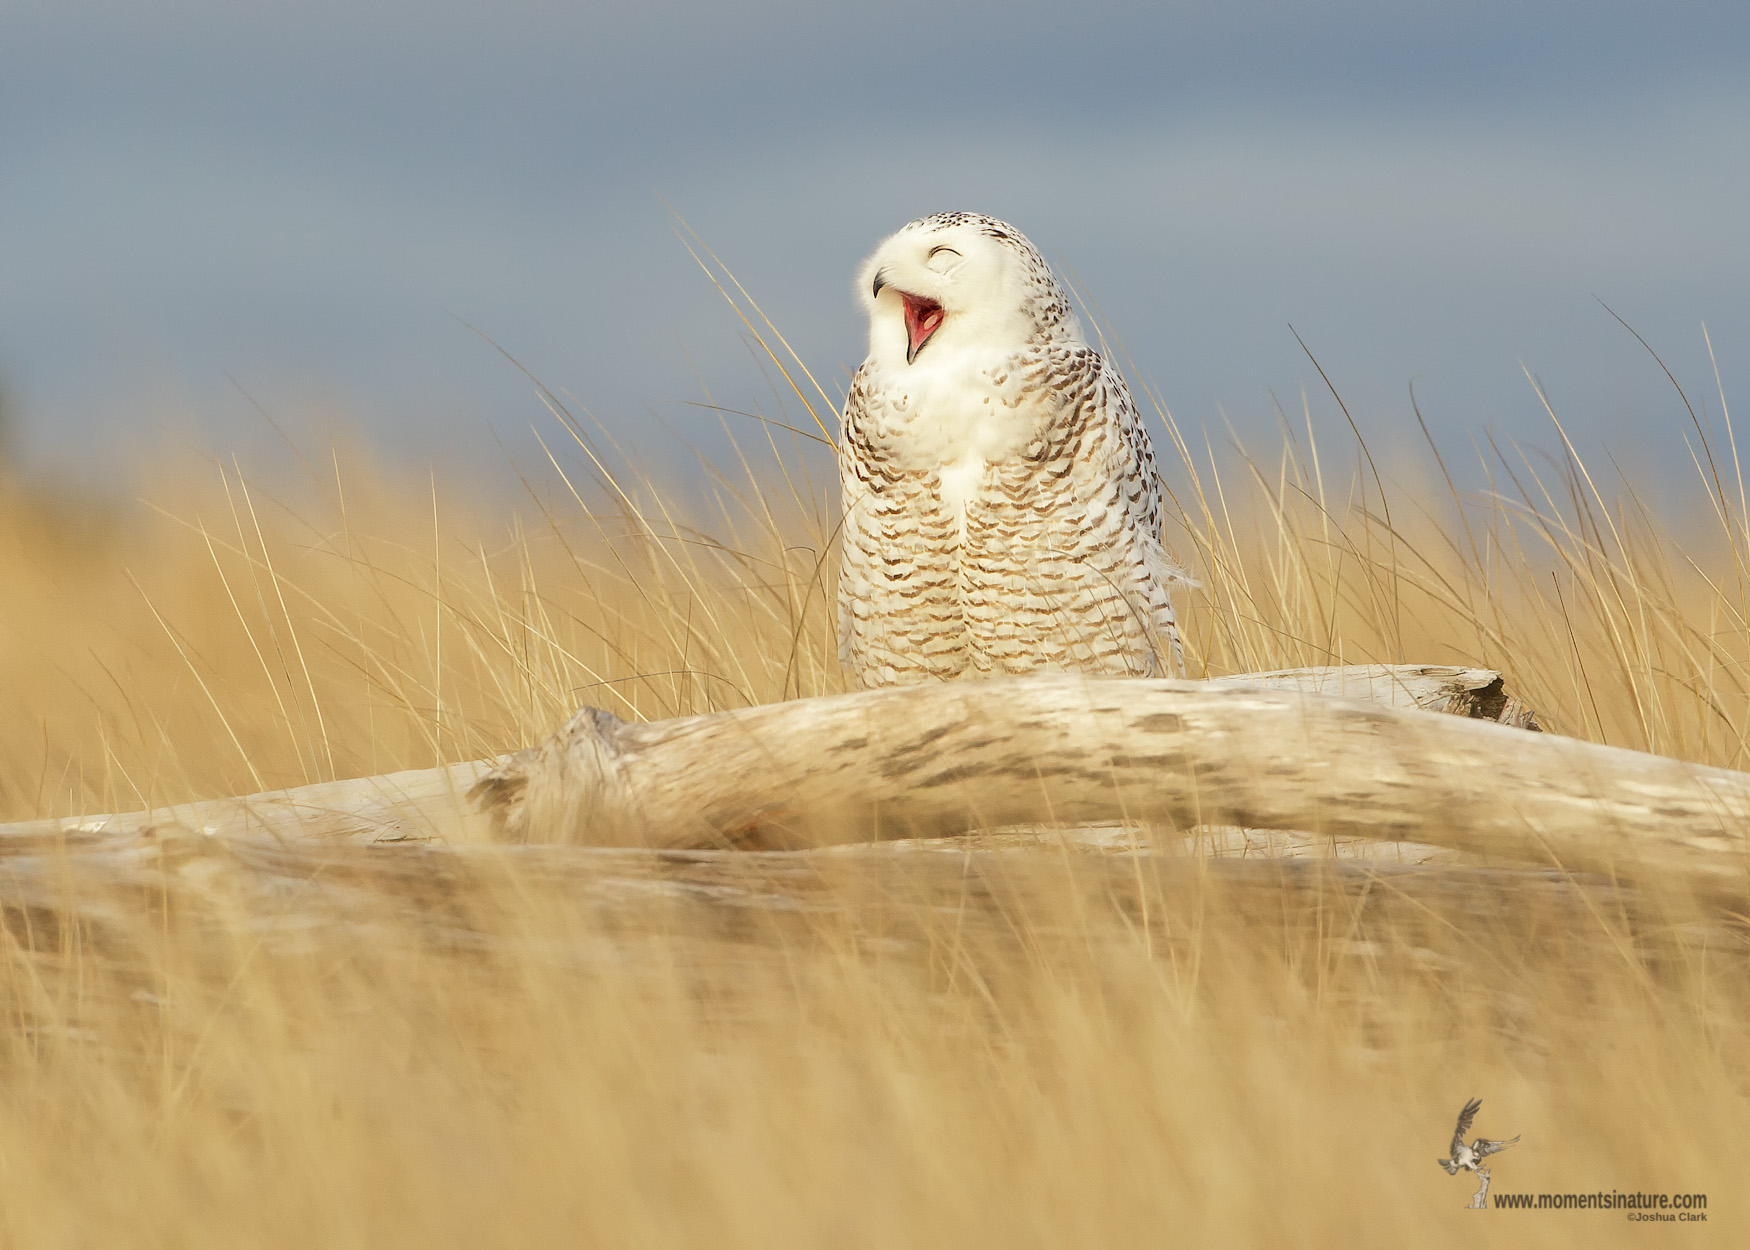 Julie Craves explains why birds yawn